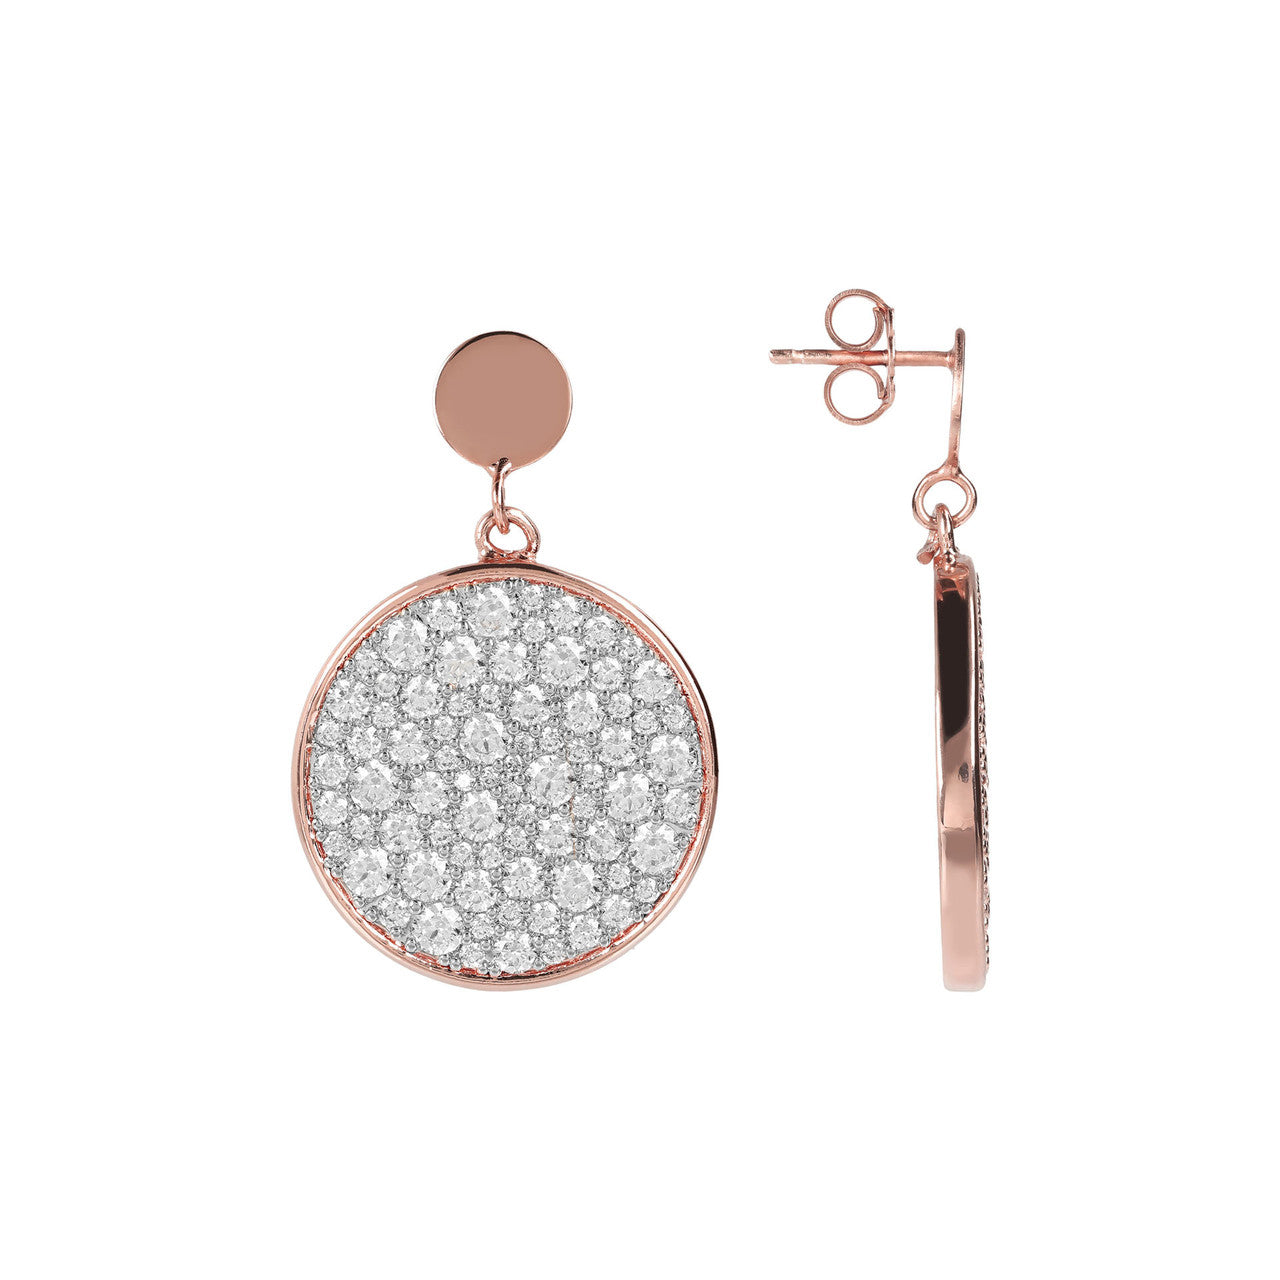 Pave Disc Earrings CUBIC ZIRCONIA front and side